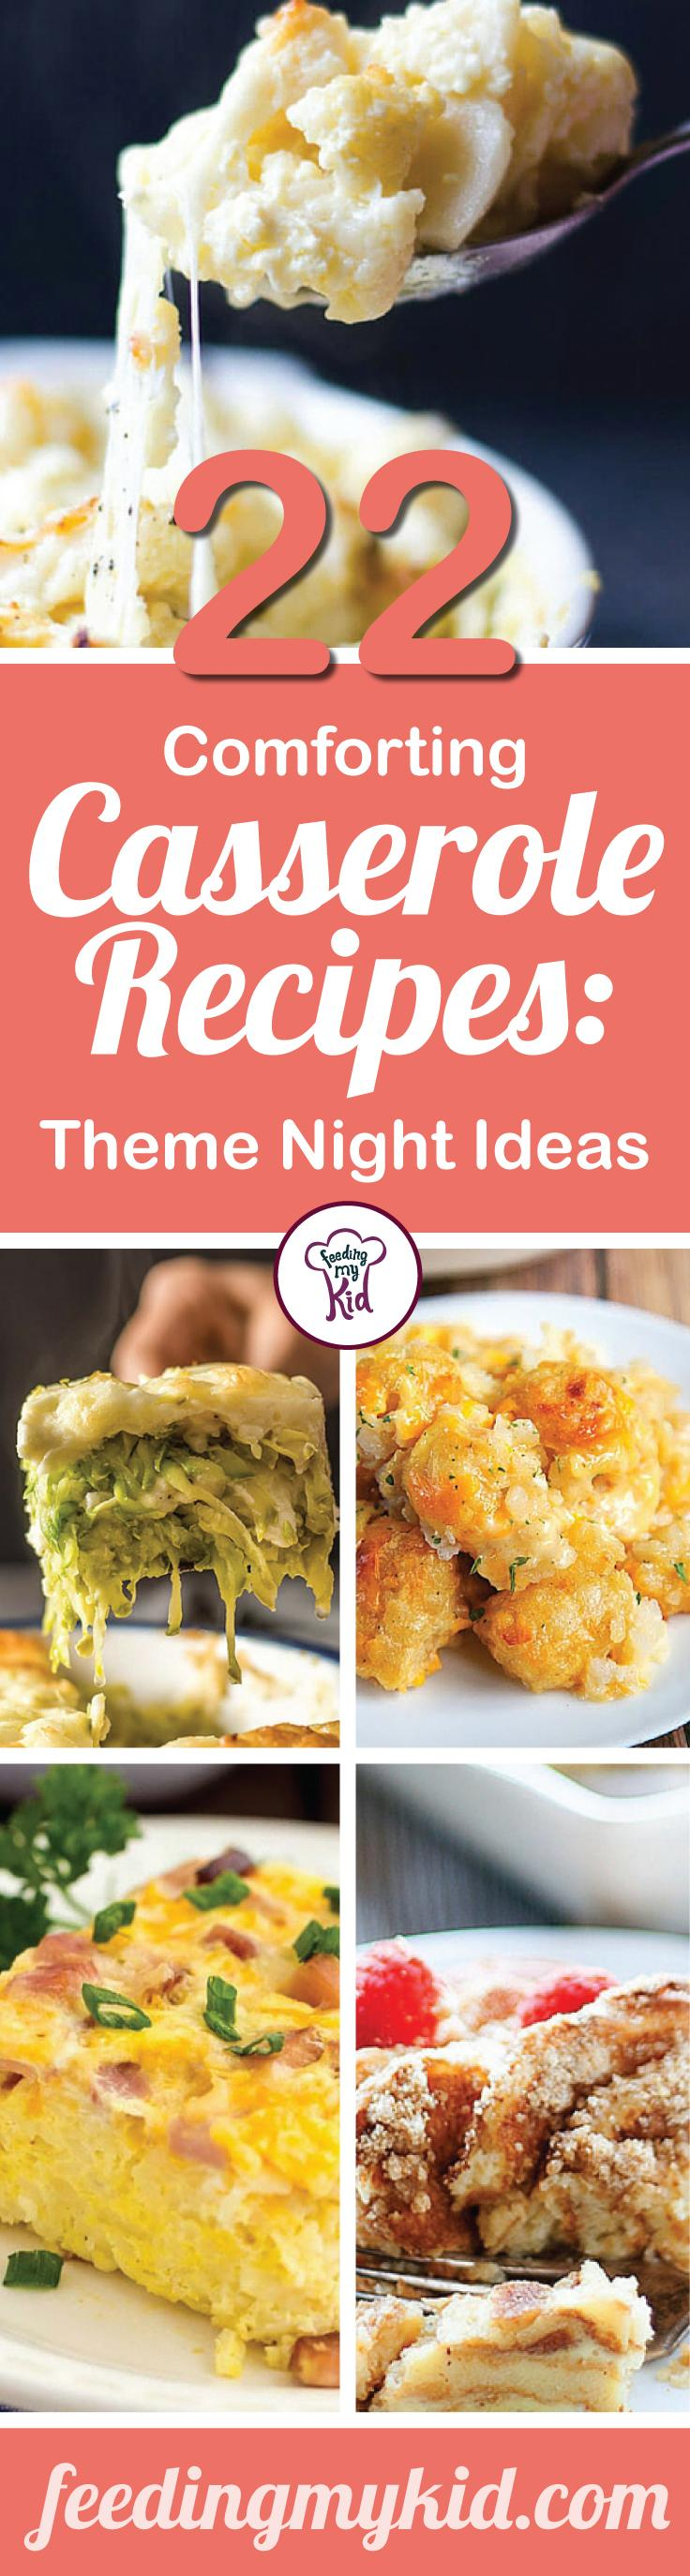 This is a must share! These comforting casserole recipes make the perfect theme night for your dinner tonight. Feeding My Kid is a great website for parents, filled with all the information you need about how to raise your kids, from healthy tips to nutritious recipes. #dinner #themenight